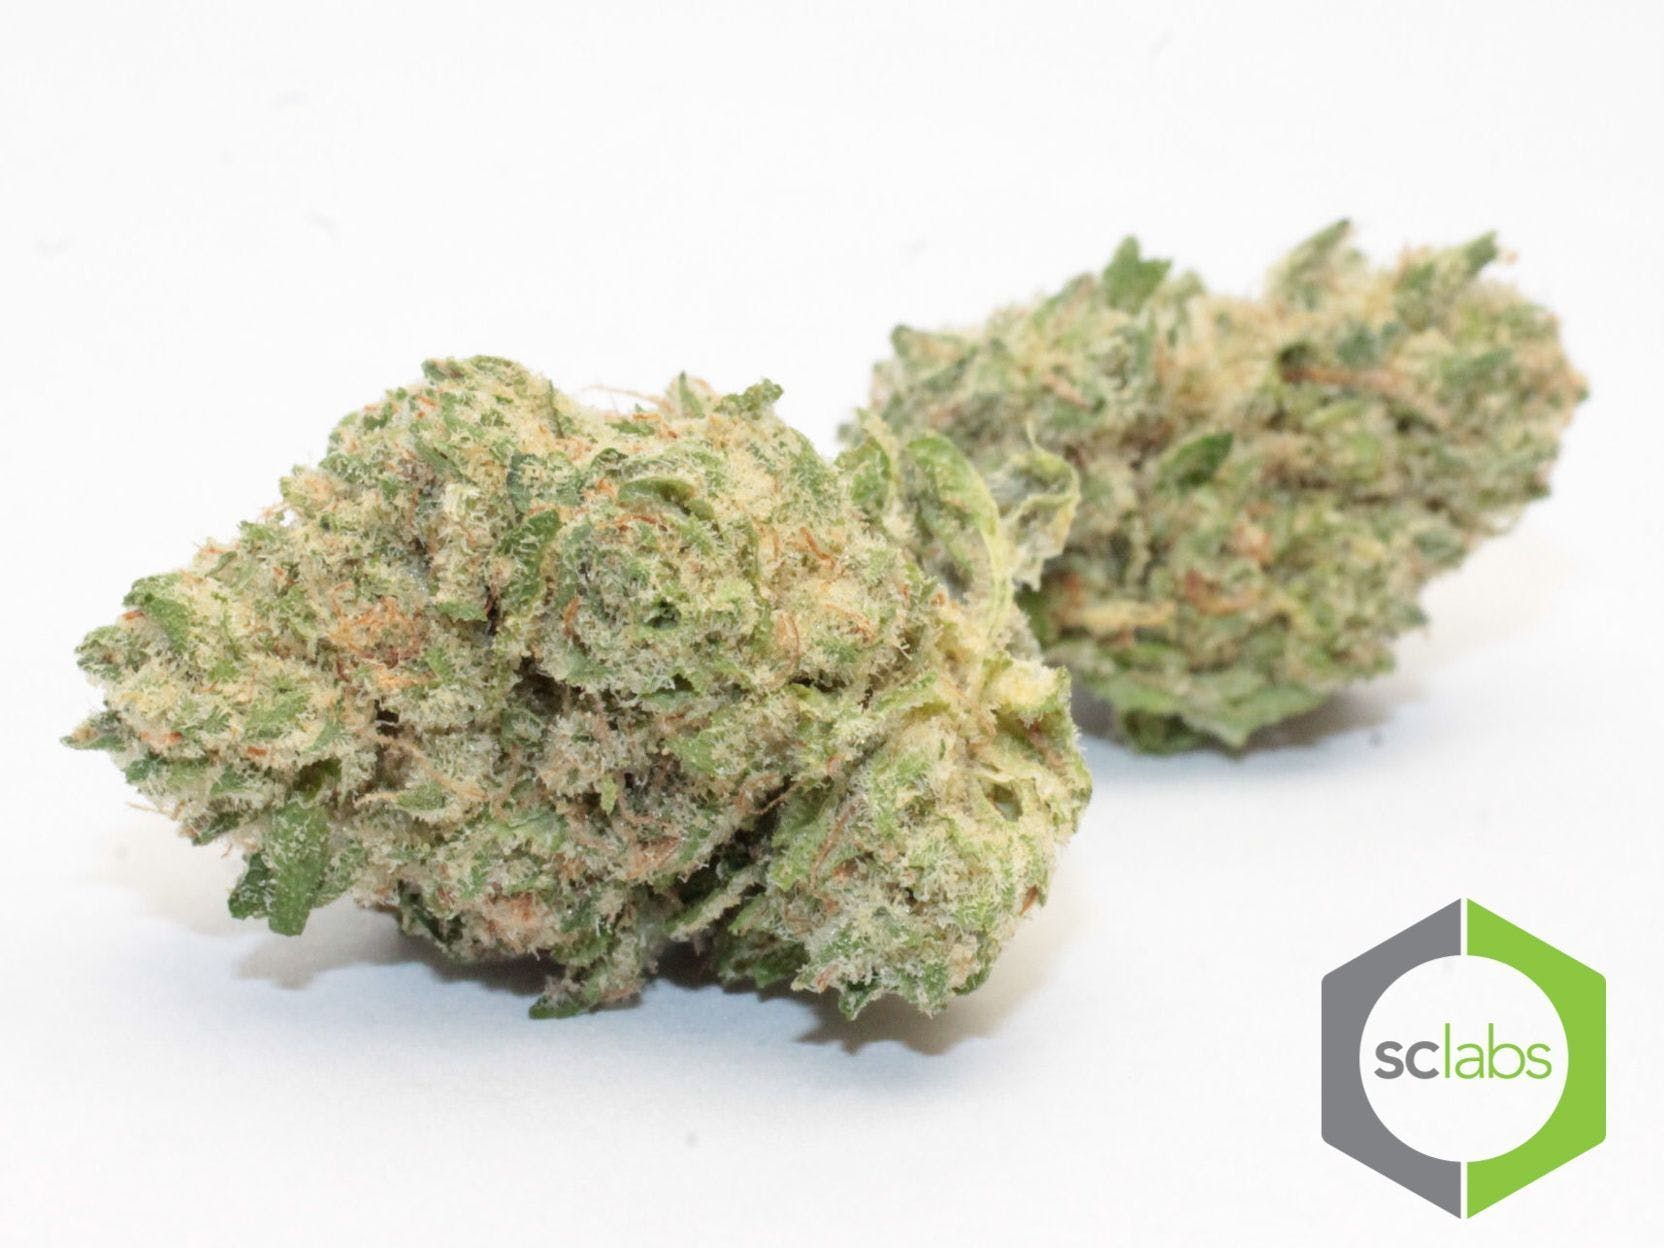 marijuana-dispensaries-1026-w-pacific-coast-wilmington-topshelf-honey-cocaine-og-5-for-35